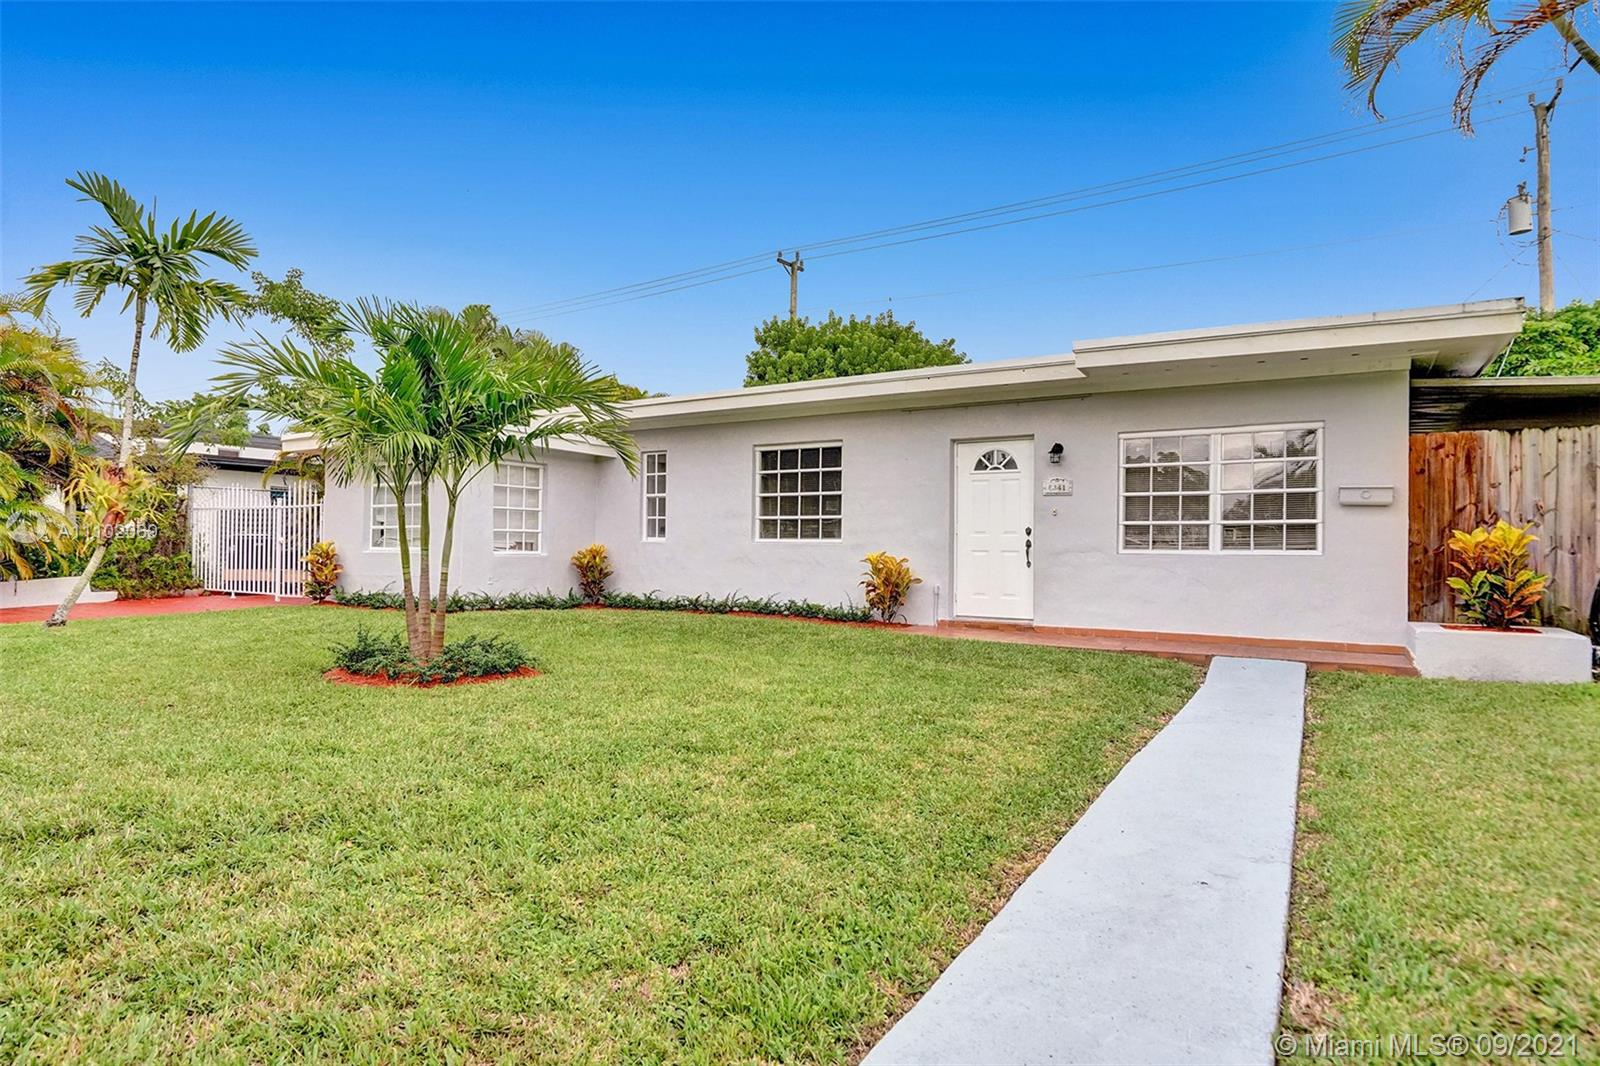 Single Family Home,For Sale,6341 SW 17th St, West Miami, Florida 33155,Brickell,realty,broker,condos near me